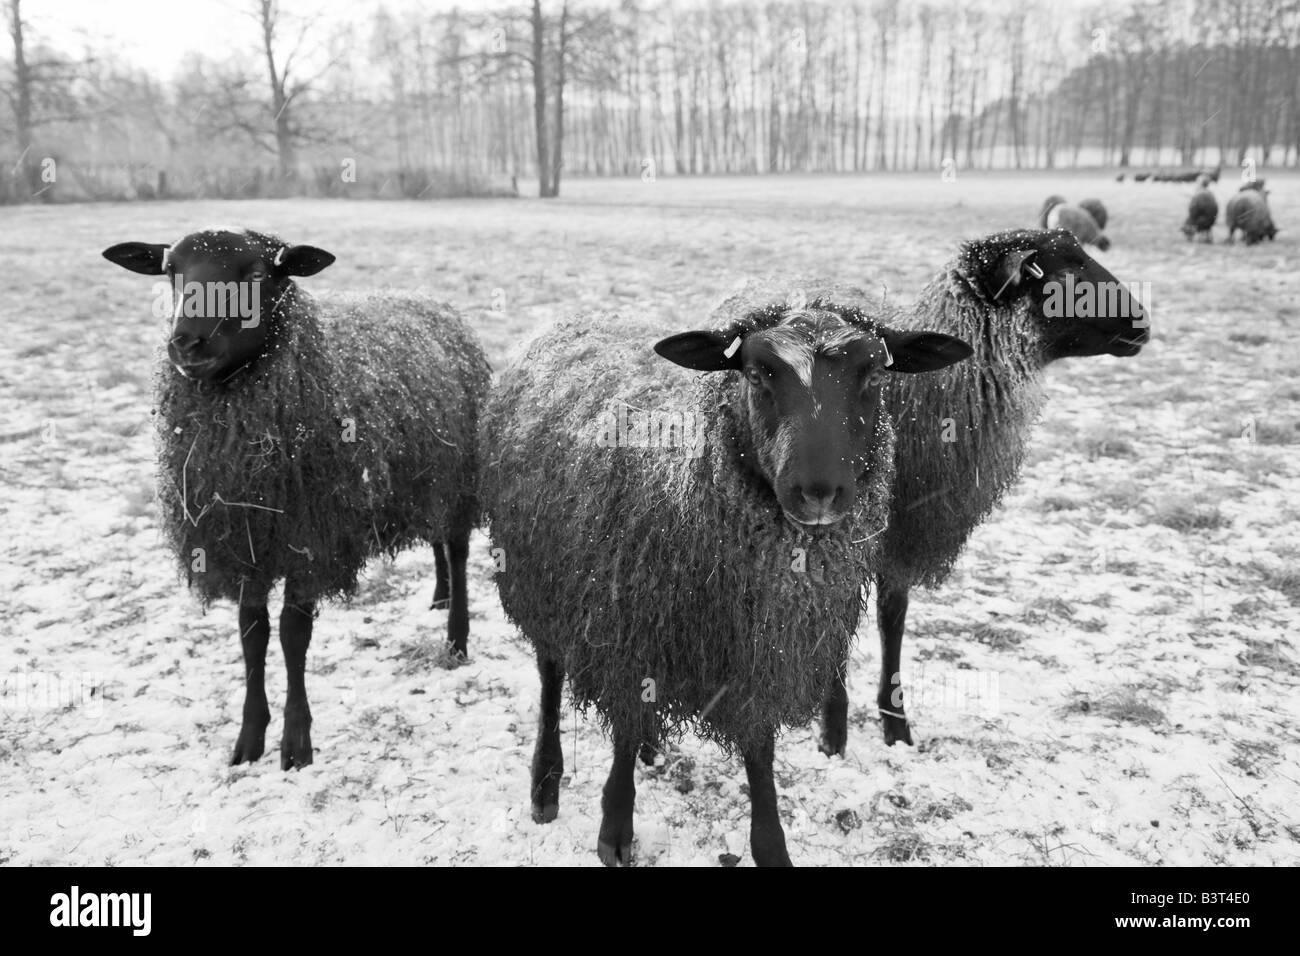 Three Gotland sheep a Swedish breed known for it s silky fur and it s friendly curiosity - Stock Image